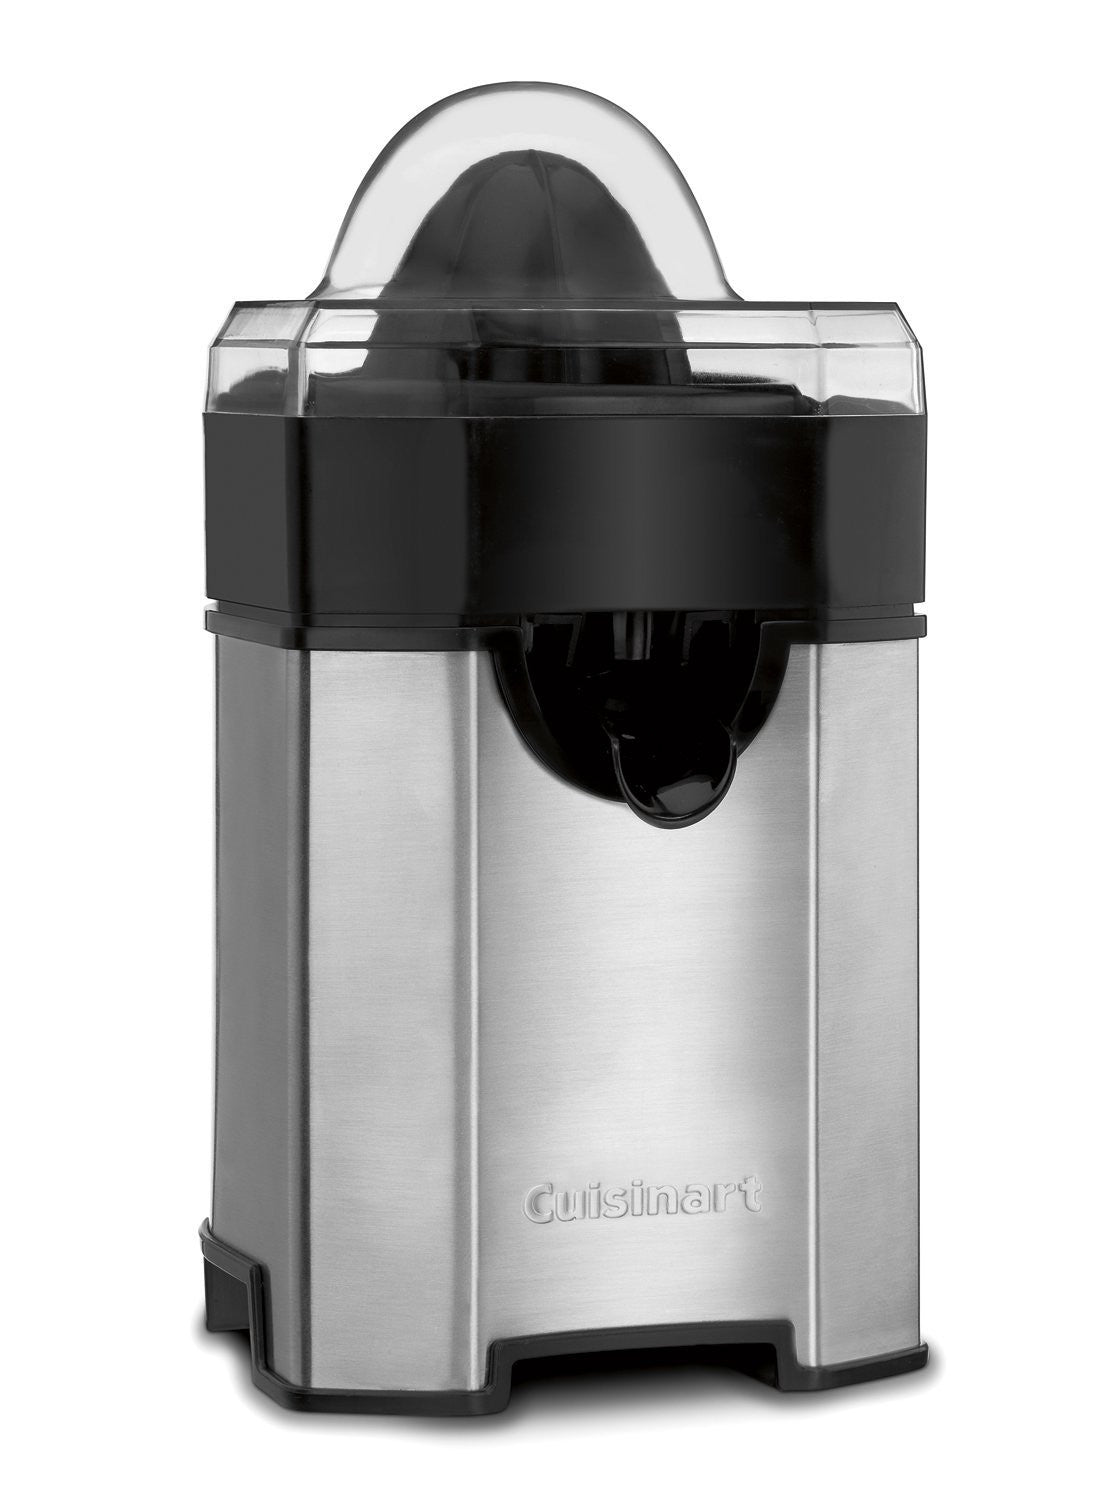 Cuisinart CCJ-500 Pulp Control Citrus Juicer, Brushed Stainless - All In One Place With Us - 7